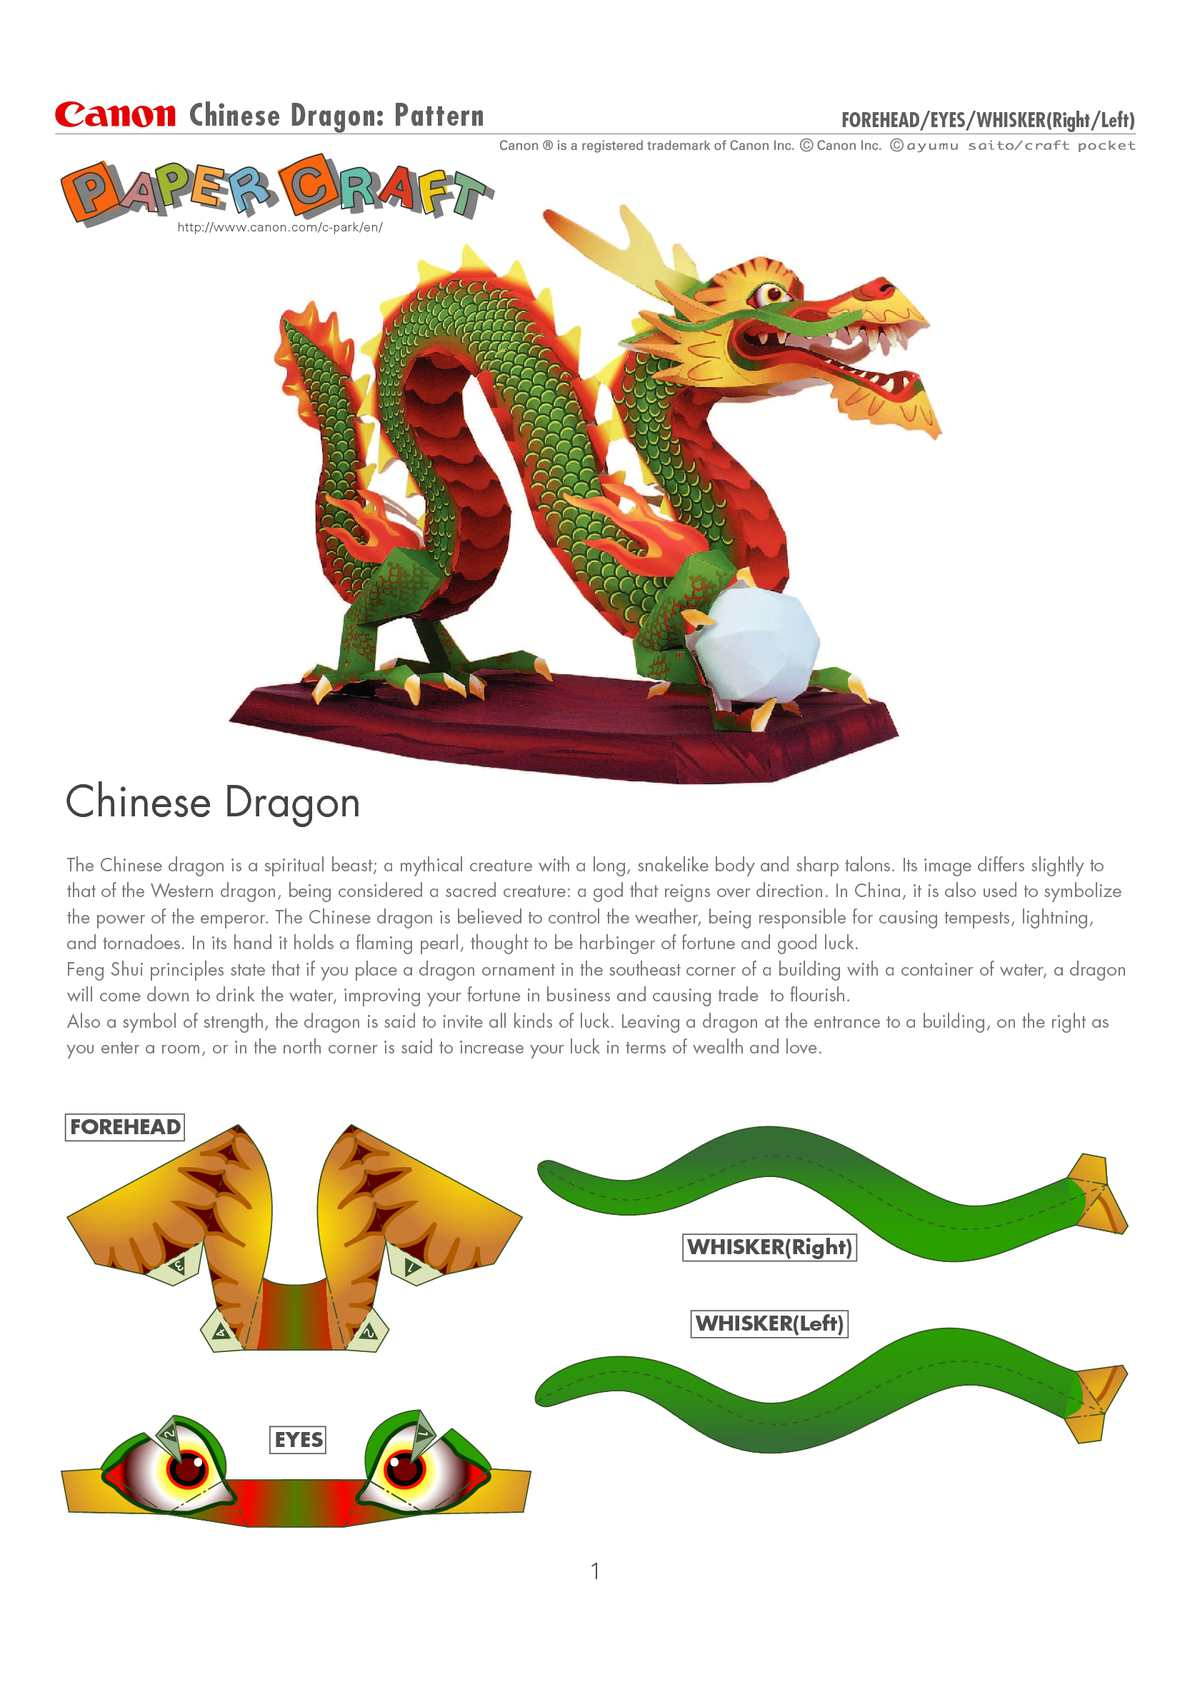 01A-Dragon céleste légendaire chinois - Papercraft X-Solutions